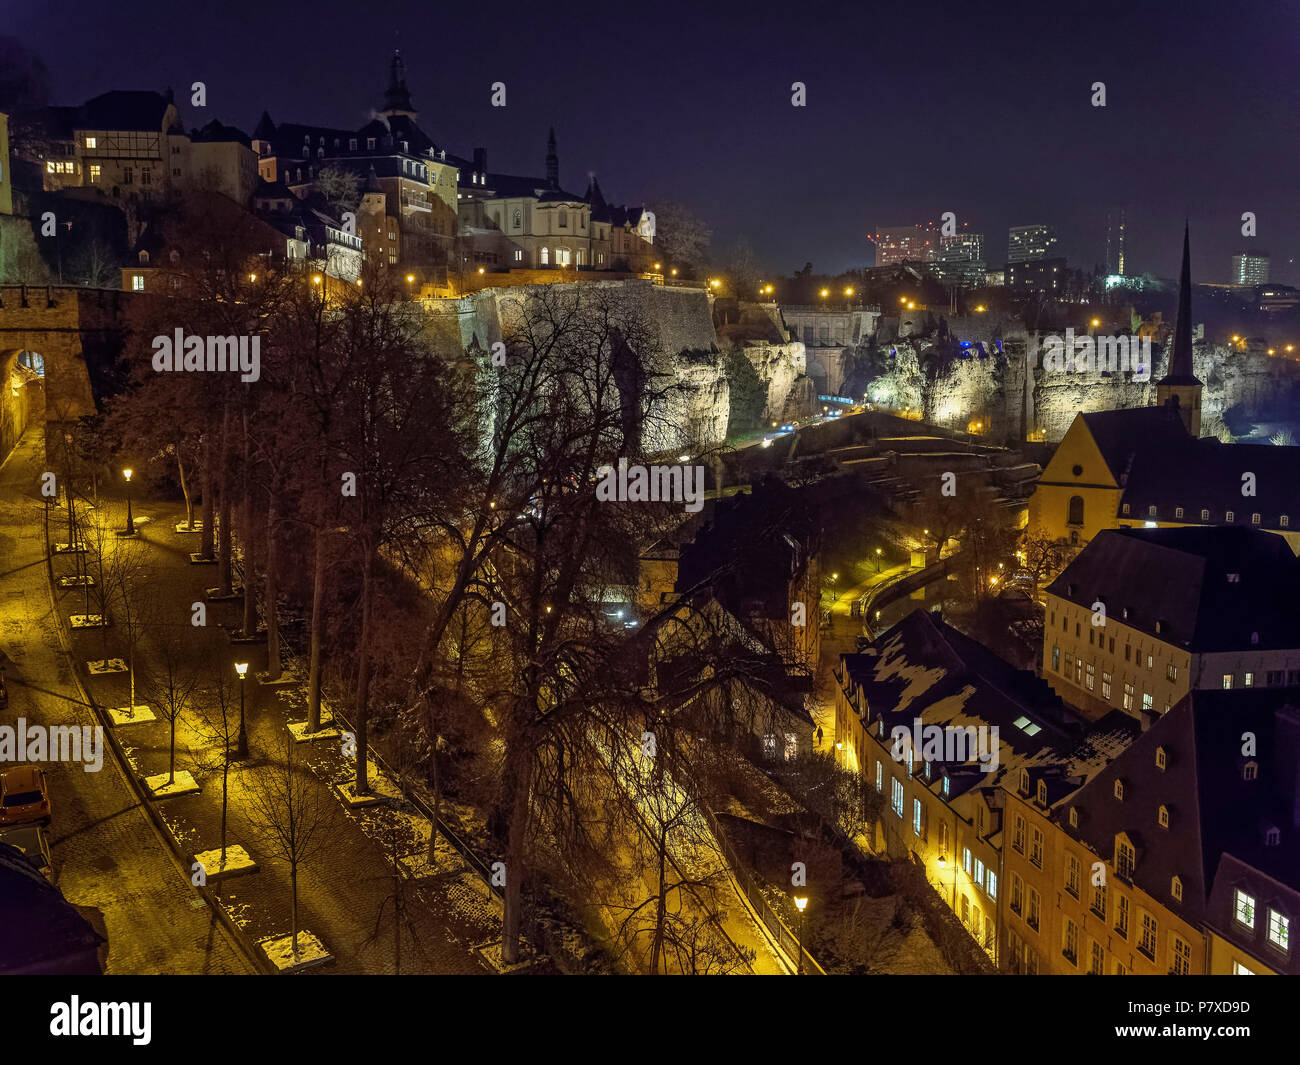 View over Grund, Bock-Casemate and European Center on Kirchberg, Luxembourg, Luxembourg City, Europe, UNESCO world heritage - Stock Image